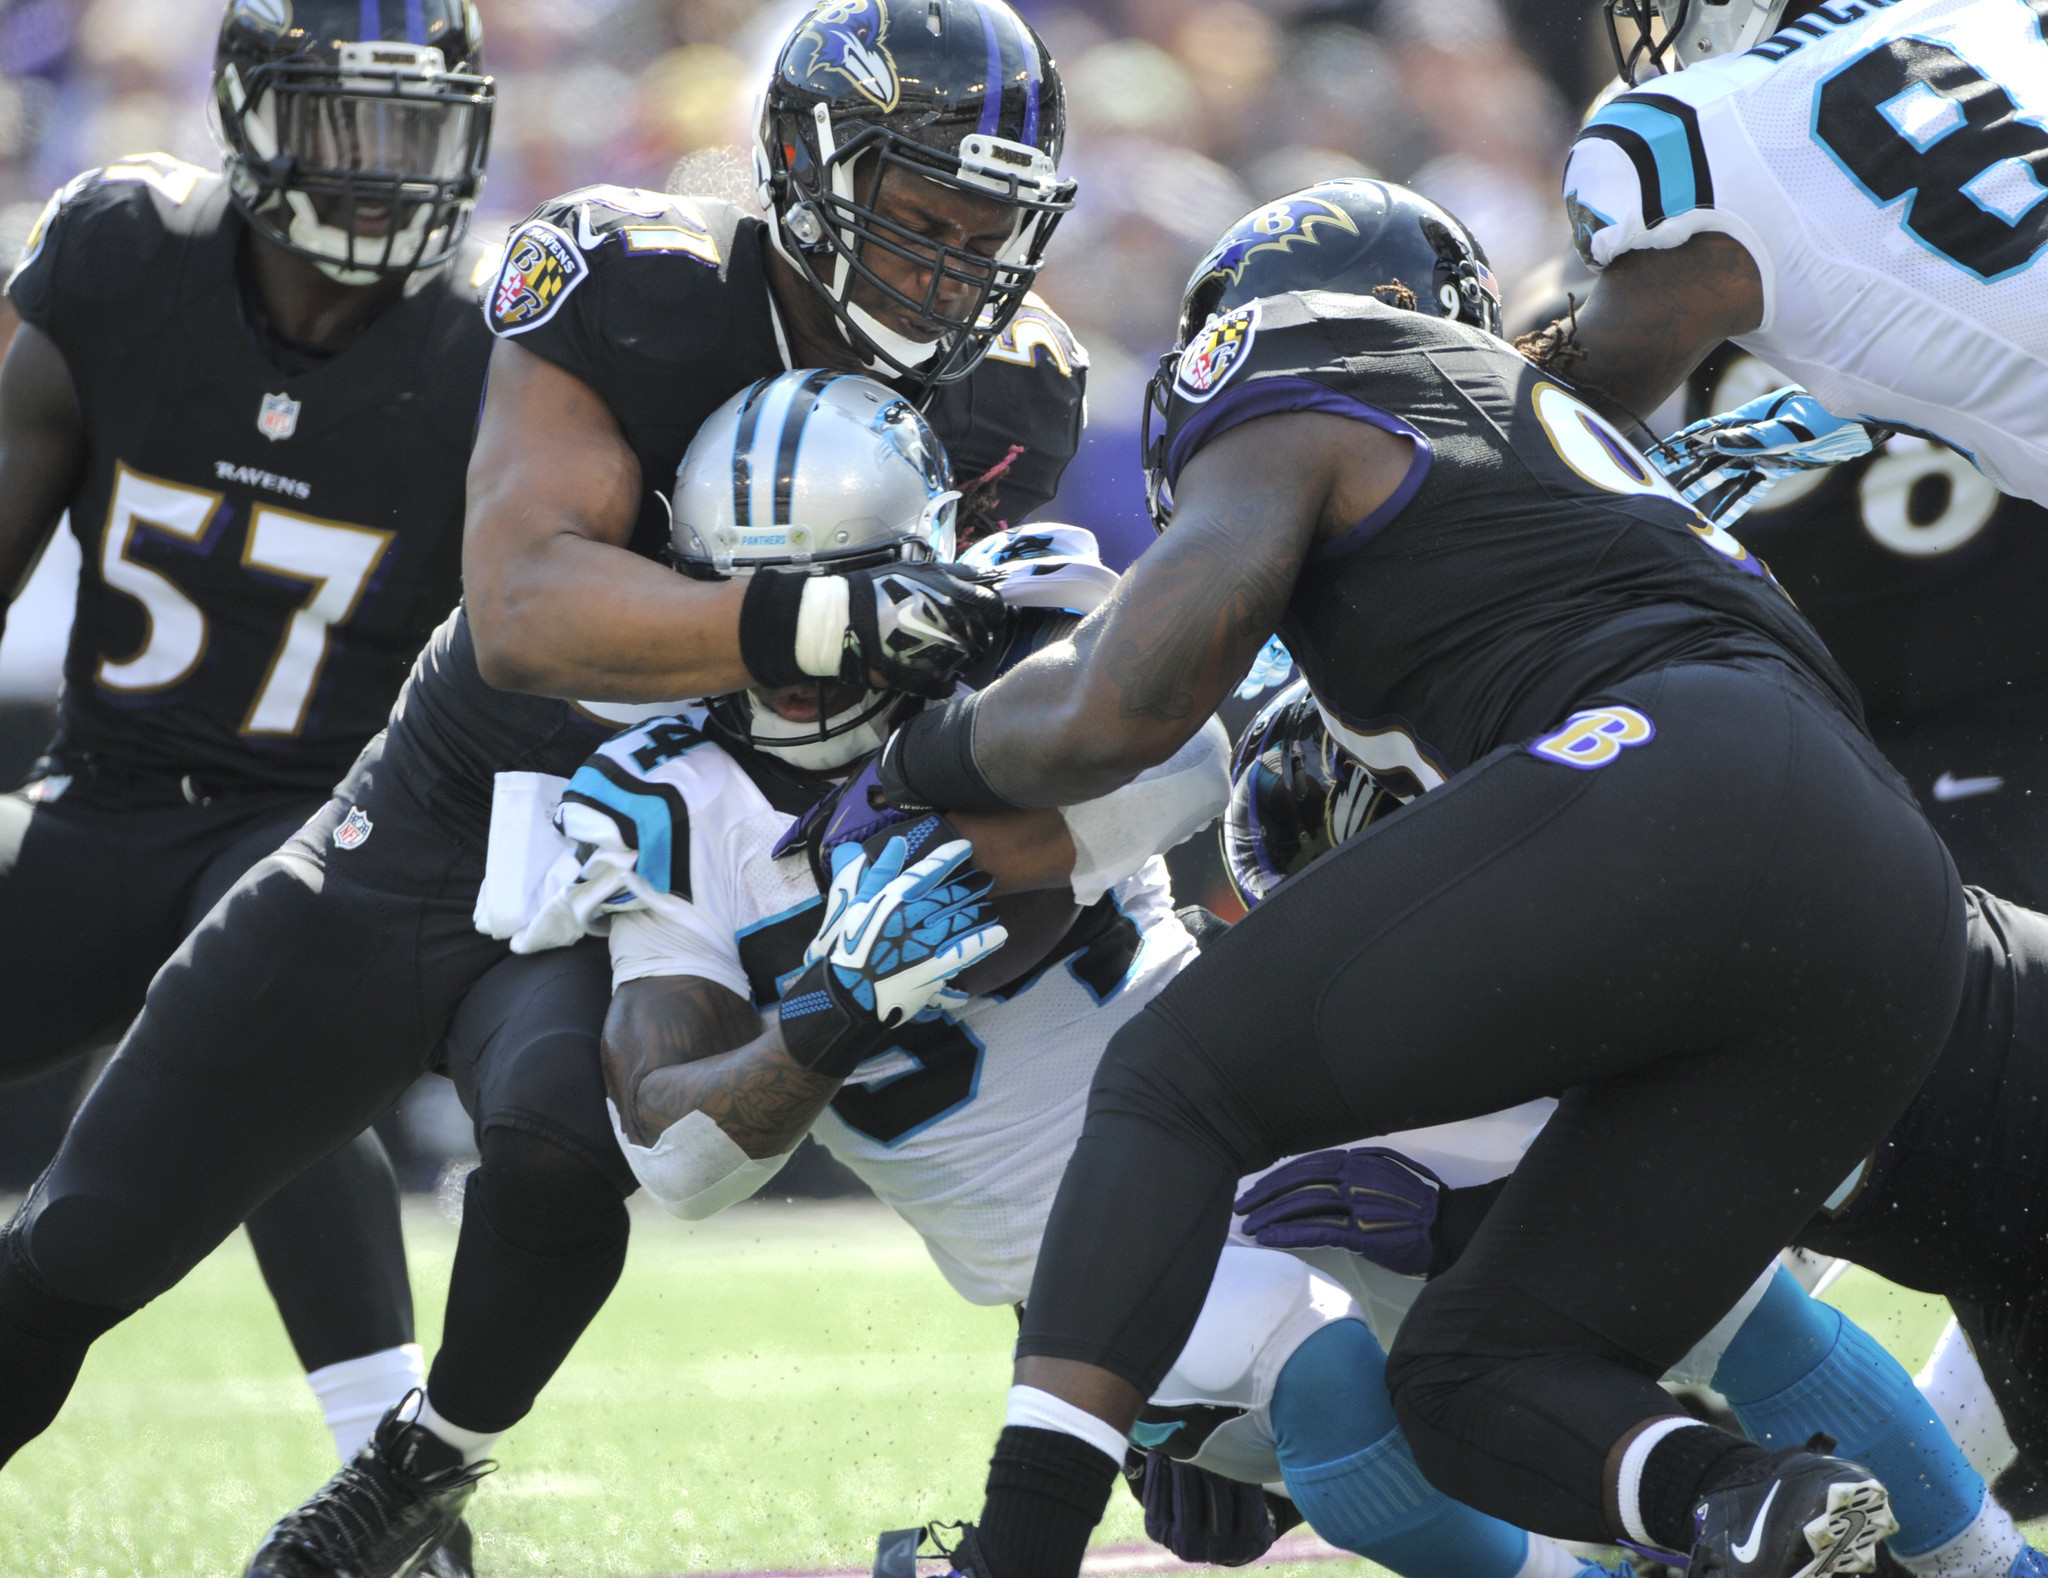 In red zone, Ravens' defense has put up stop sign this season